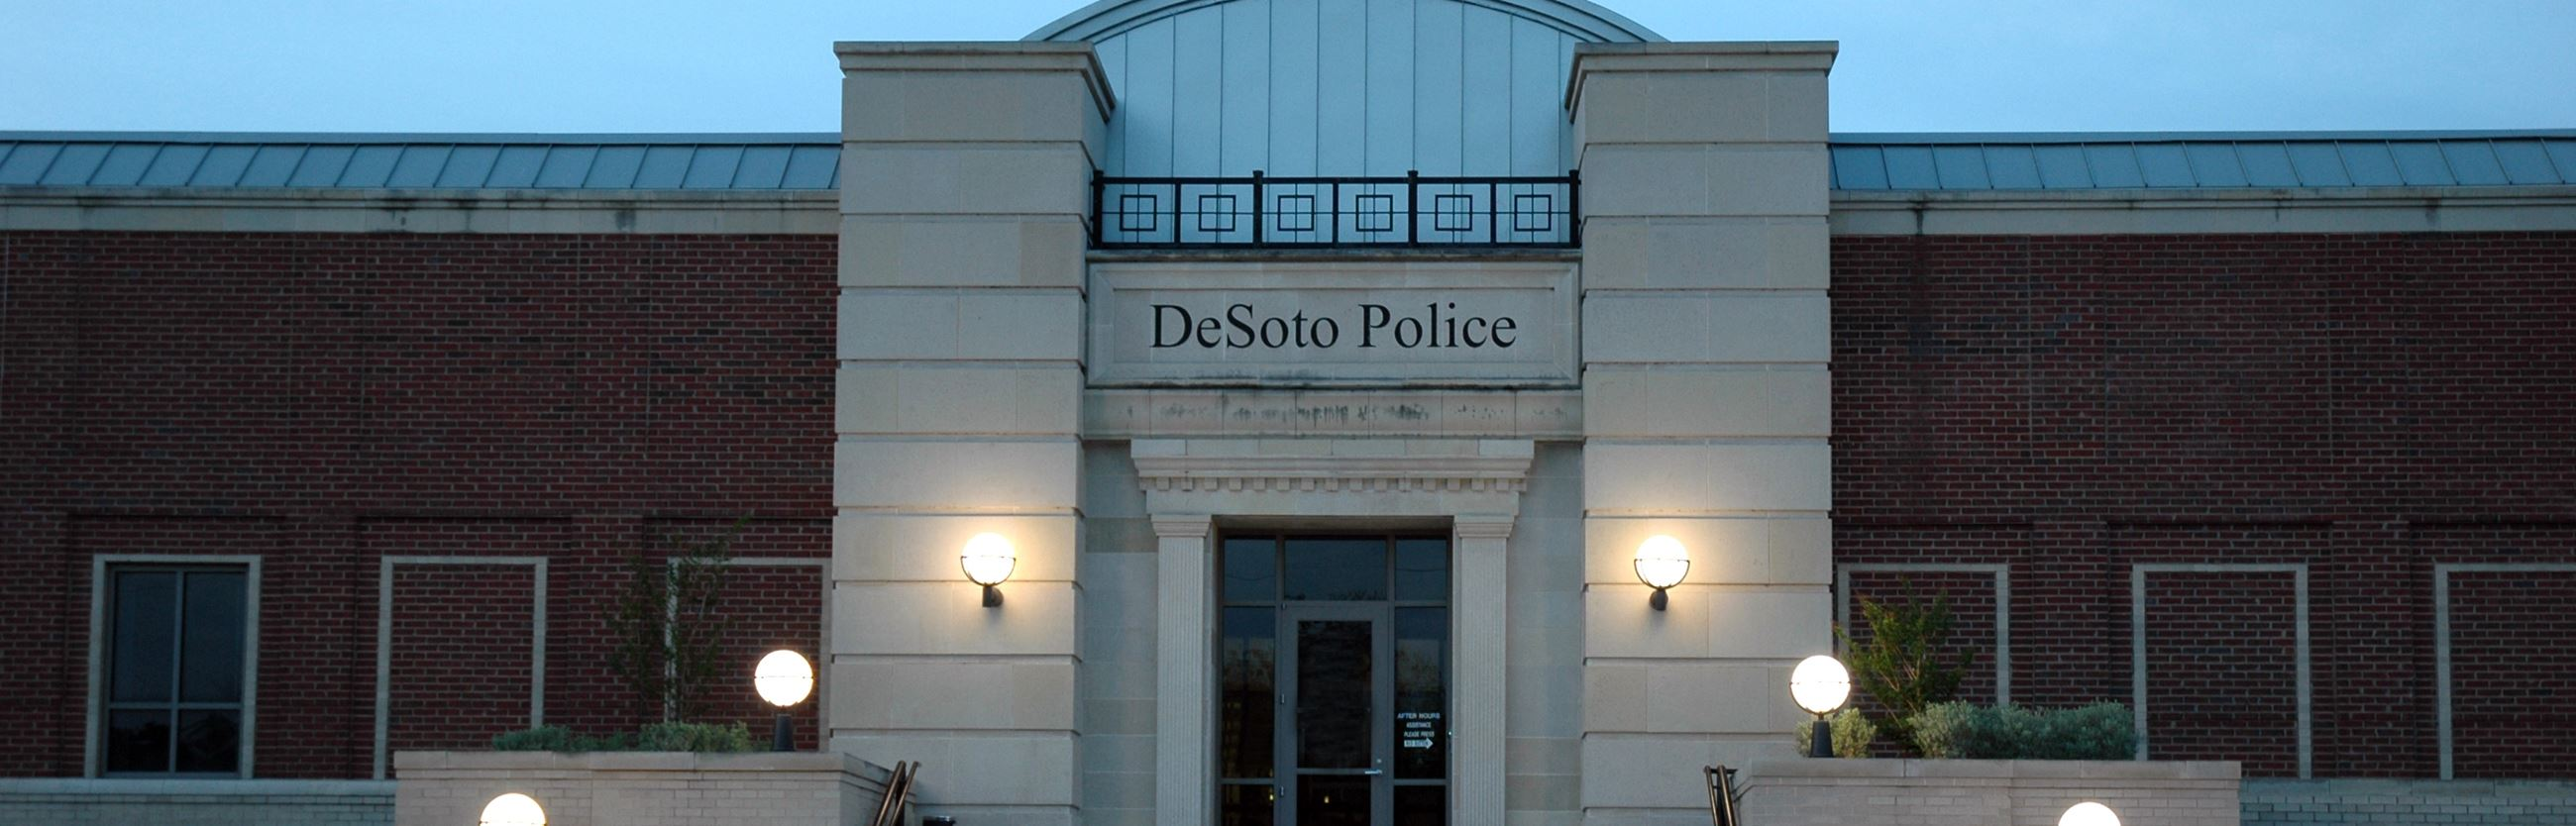 Tri-City Jail | DeSoto, TX - Official Website